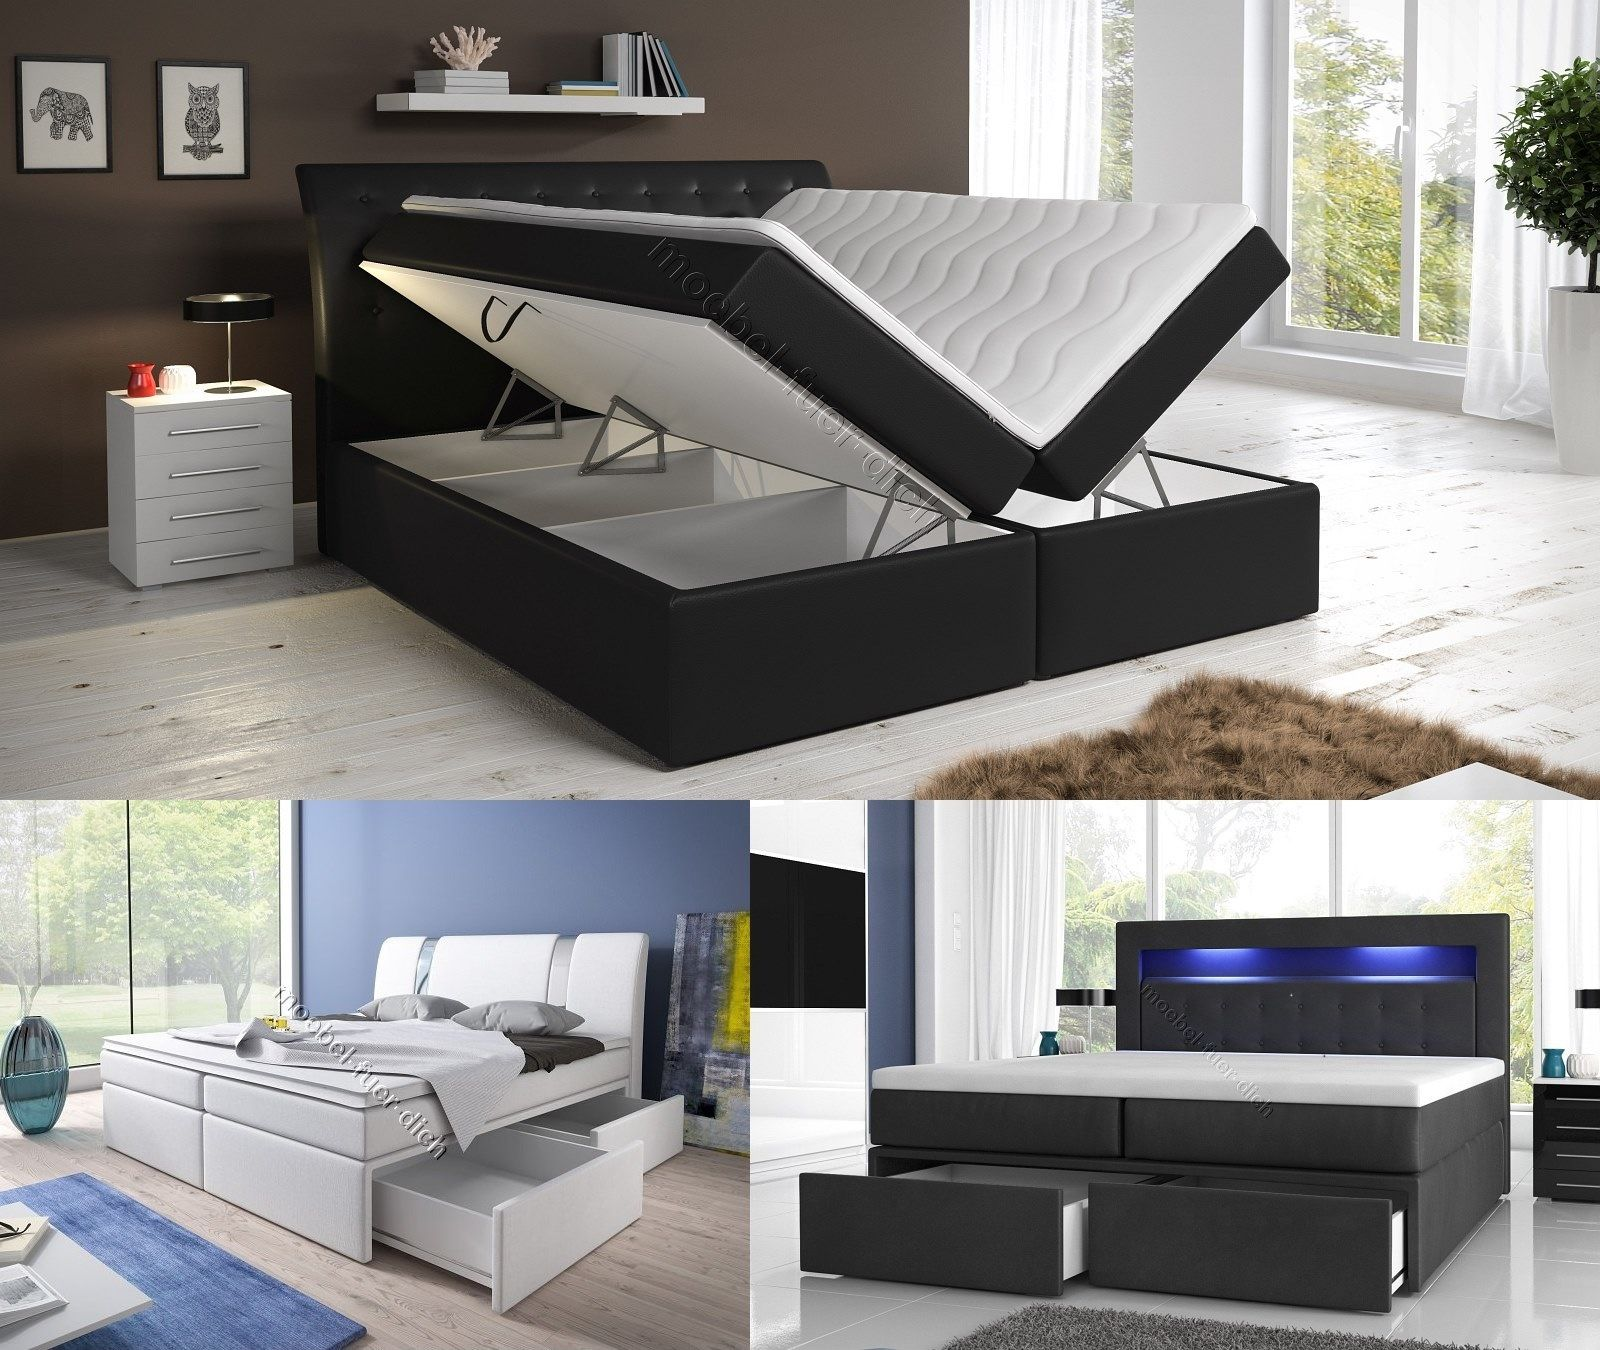 boxspringbett 200x200 mit bettkasten boxspringbett mit bettkasten online kaufen xxl. Black Bedroom Furniture Sets. Home Design Ideas